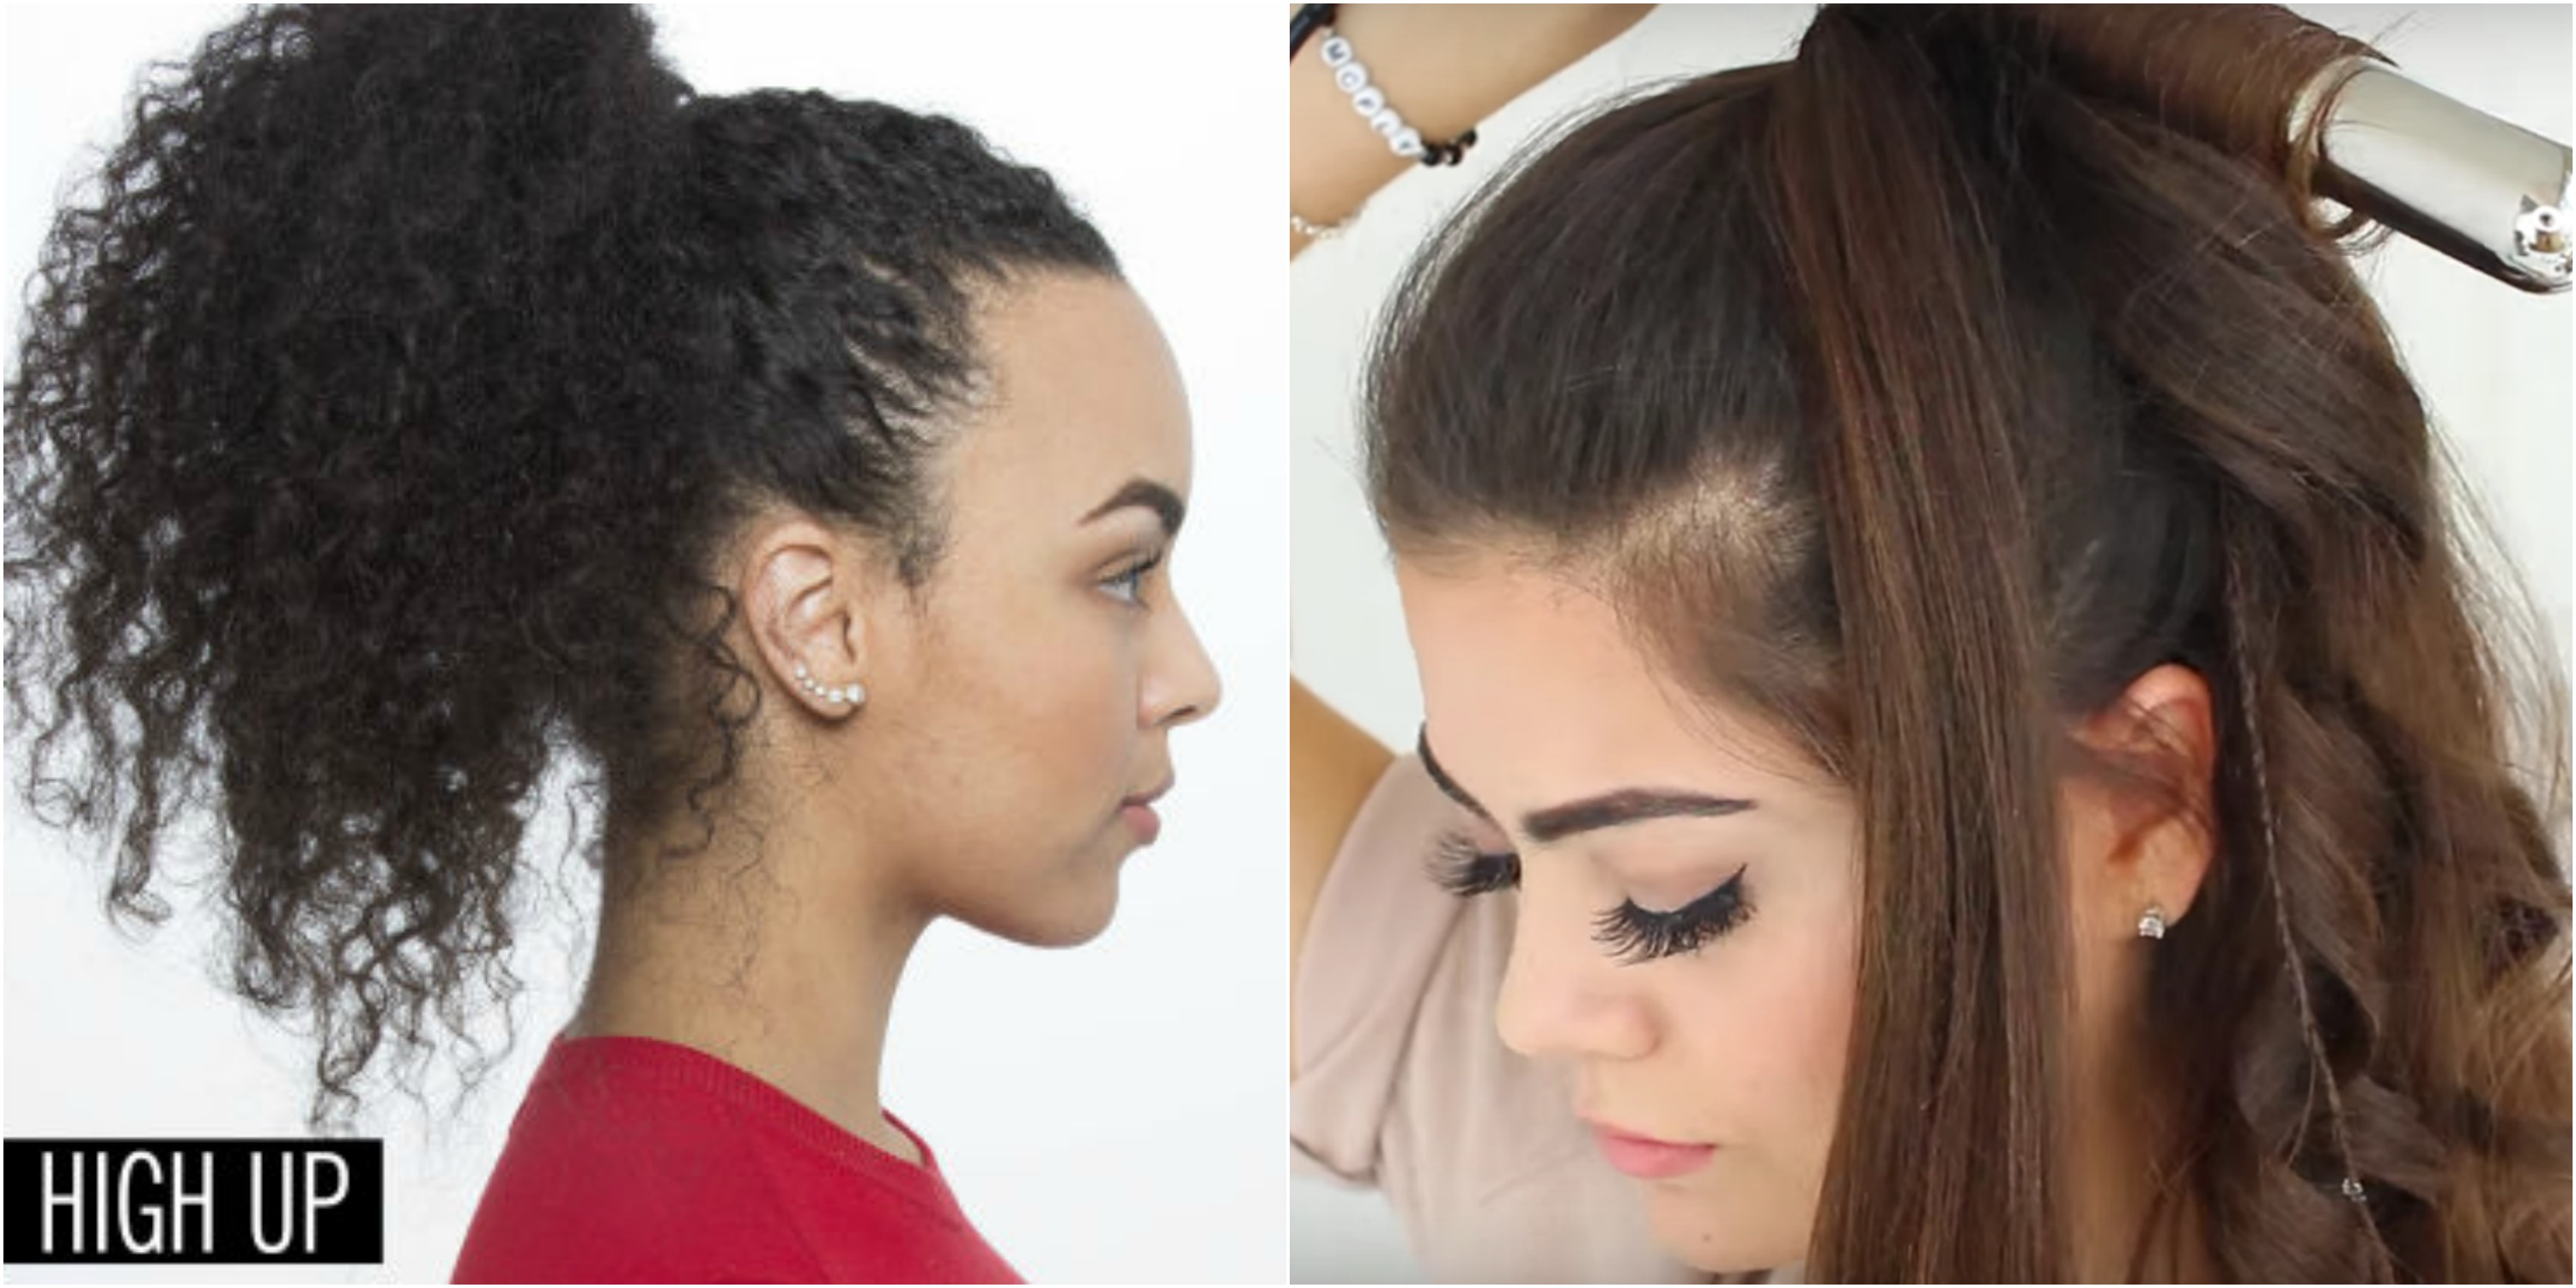 how to get nice hair style 11 easy ponytail hairstyles best ideas for ponytail styles 7503 | 1472243702 ponytail hacks collage index